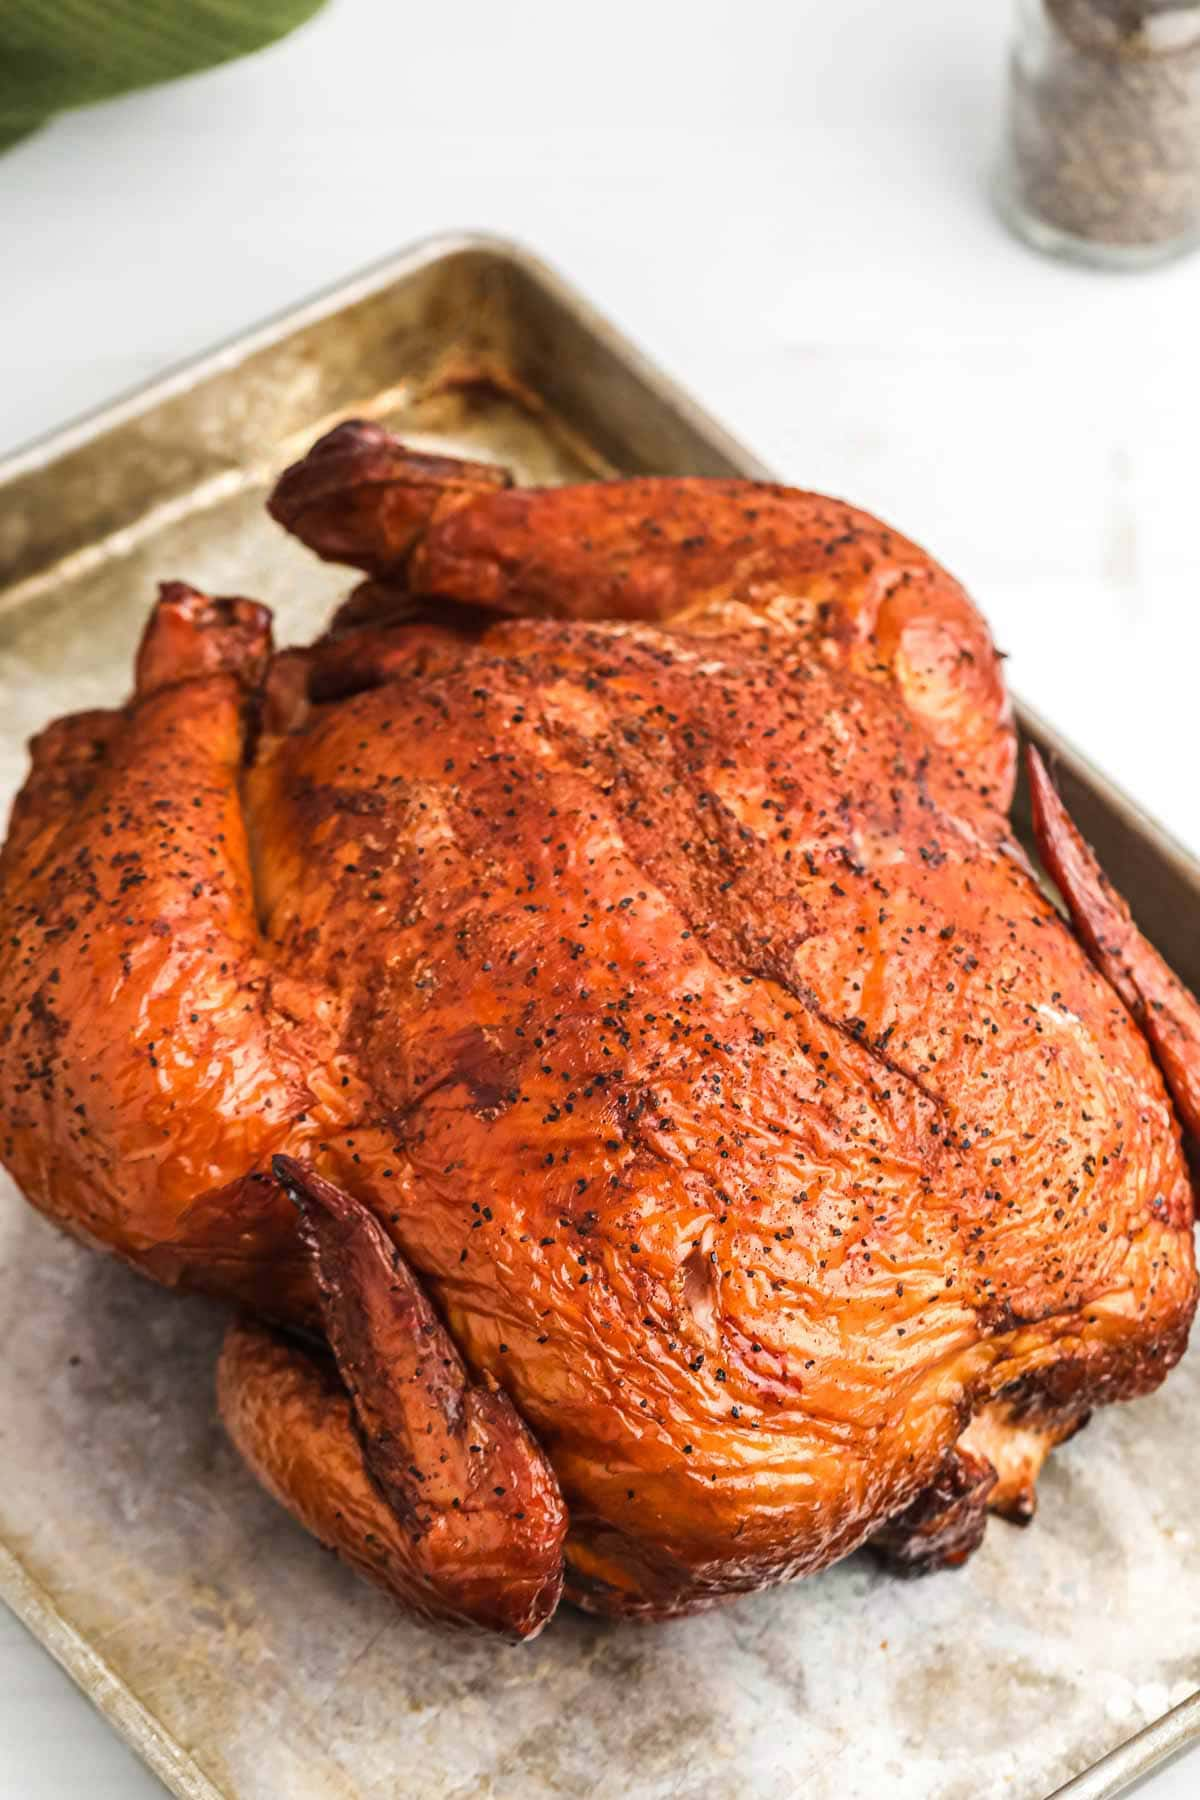 A whole smoked chicken placed ona. tray